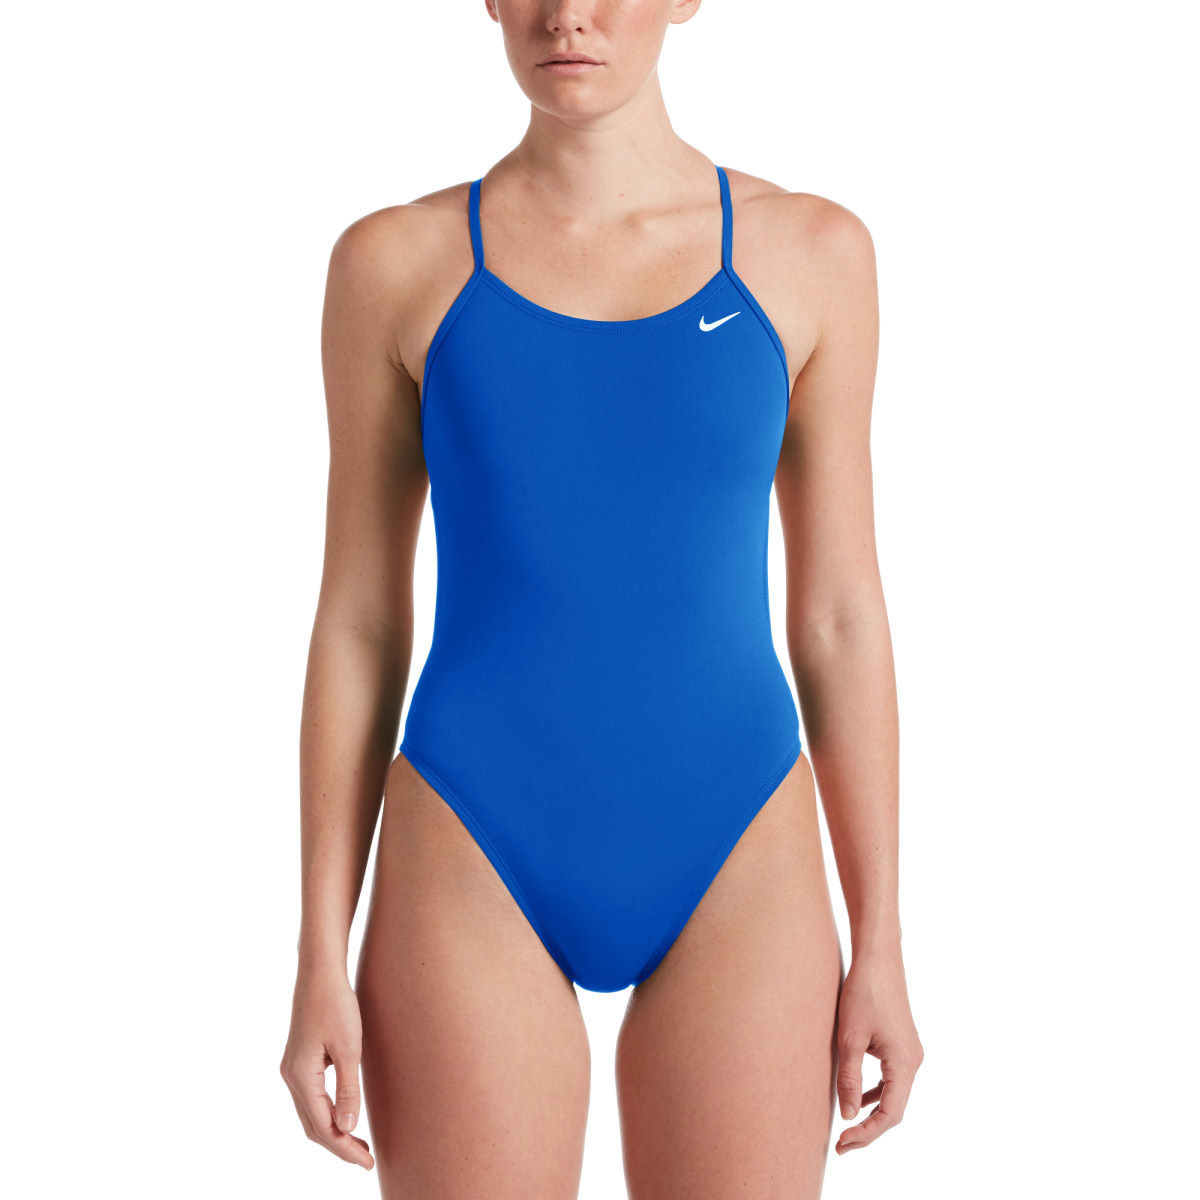 Nike Womens Hydrastrong Swimsuit (cutout) - 30 494 Game Royal